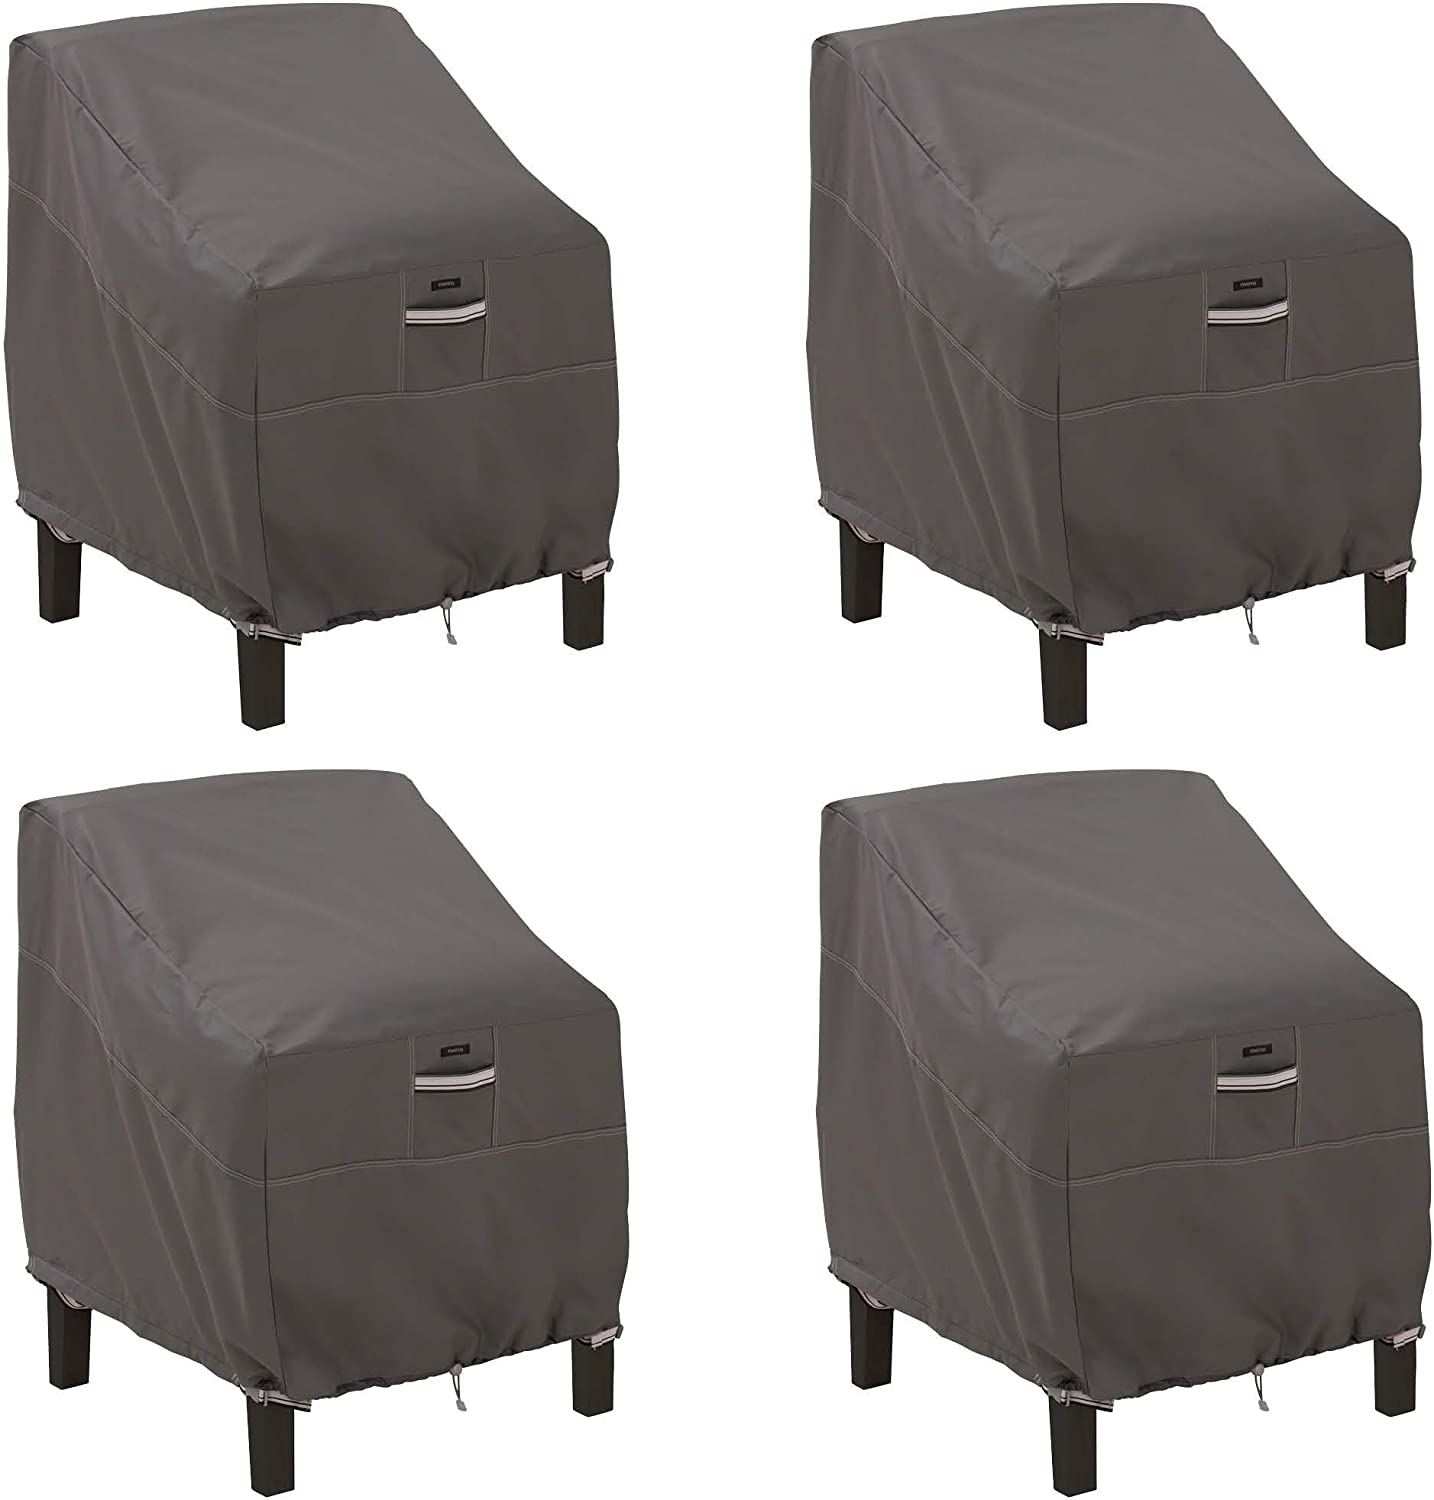 Classic Accessories Ravenna Patio Lounge Chair Cover, Large (4-Pack)